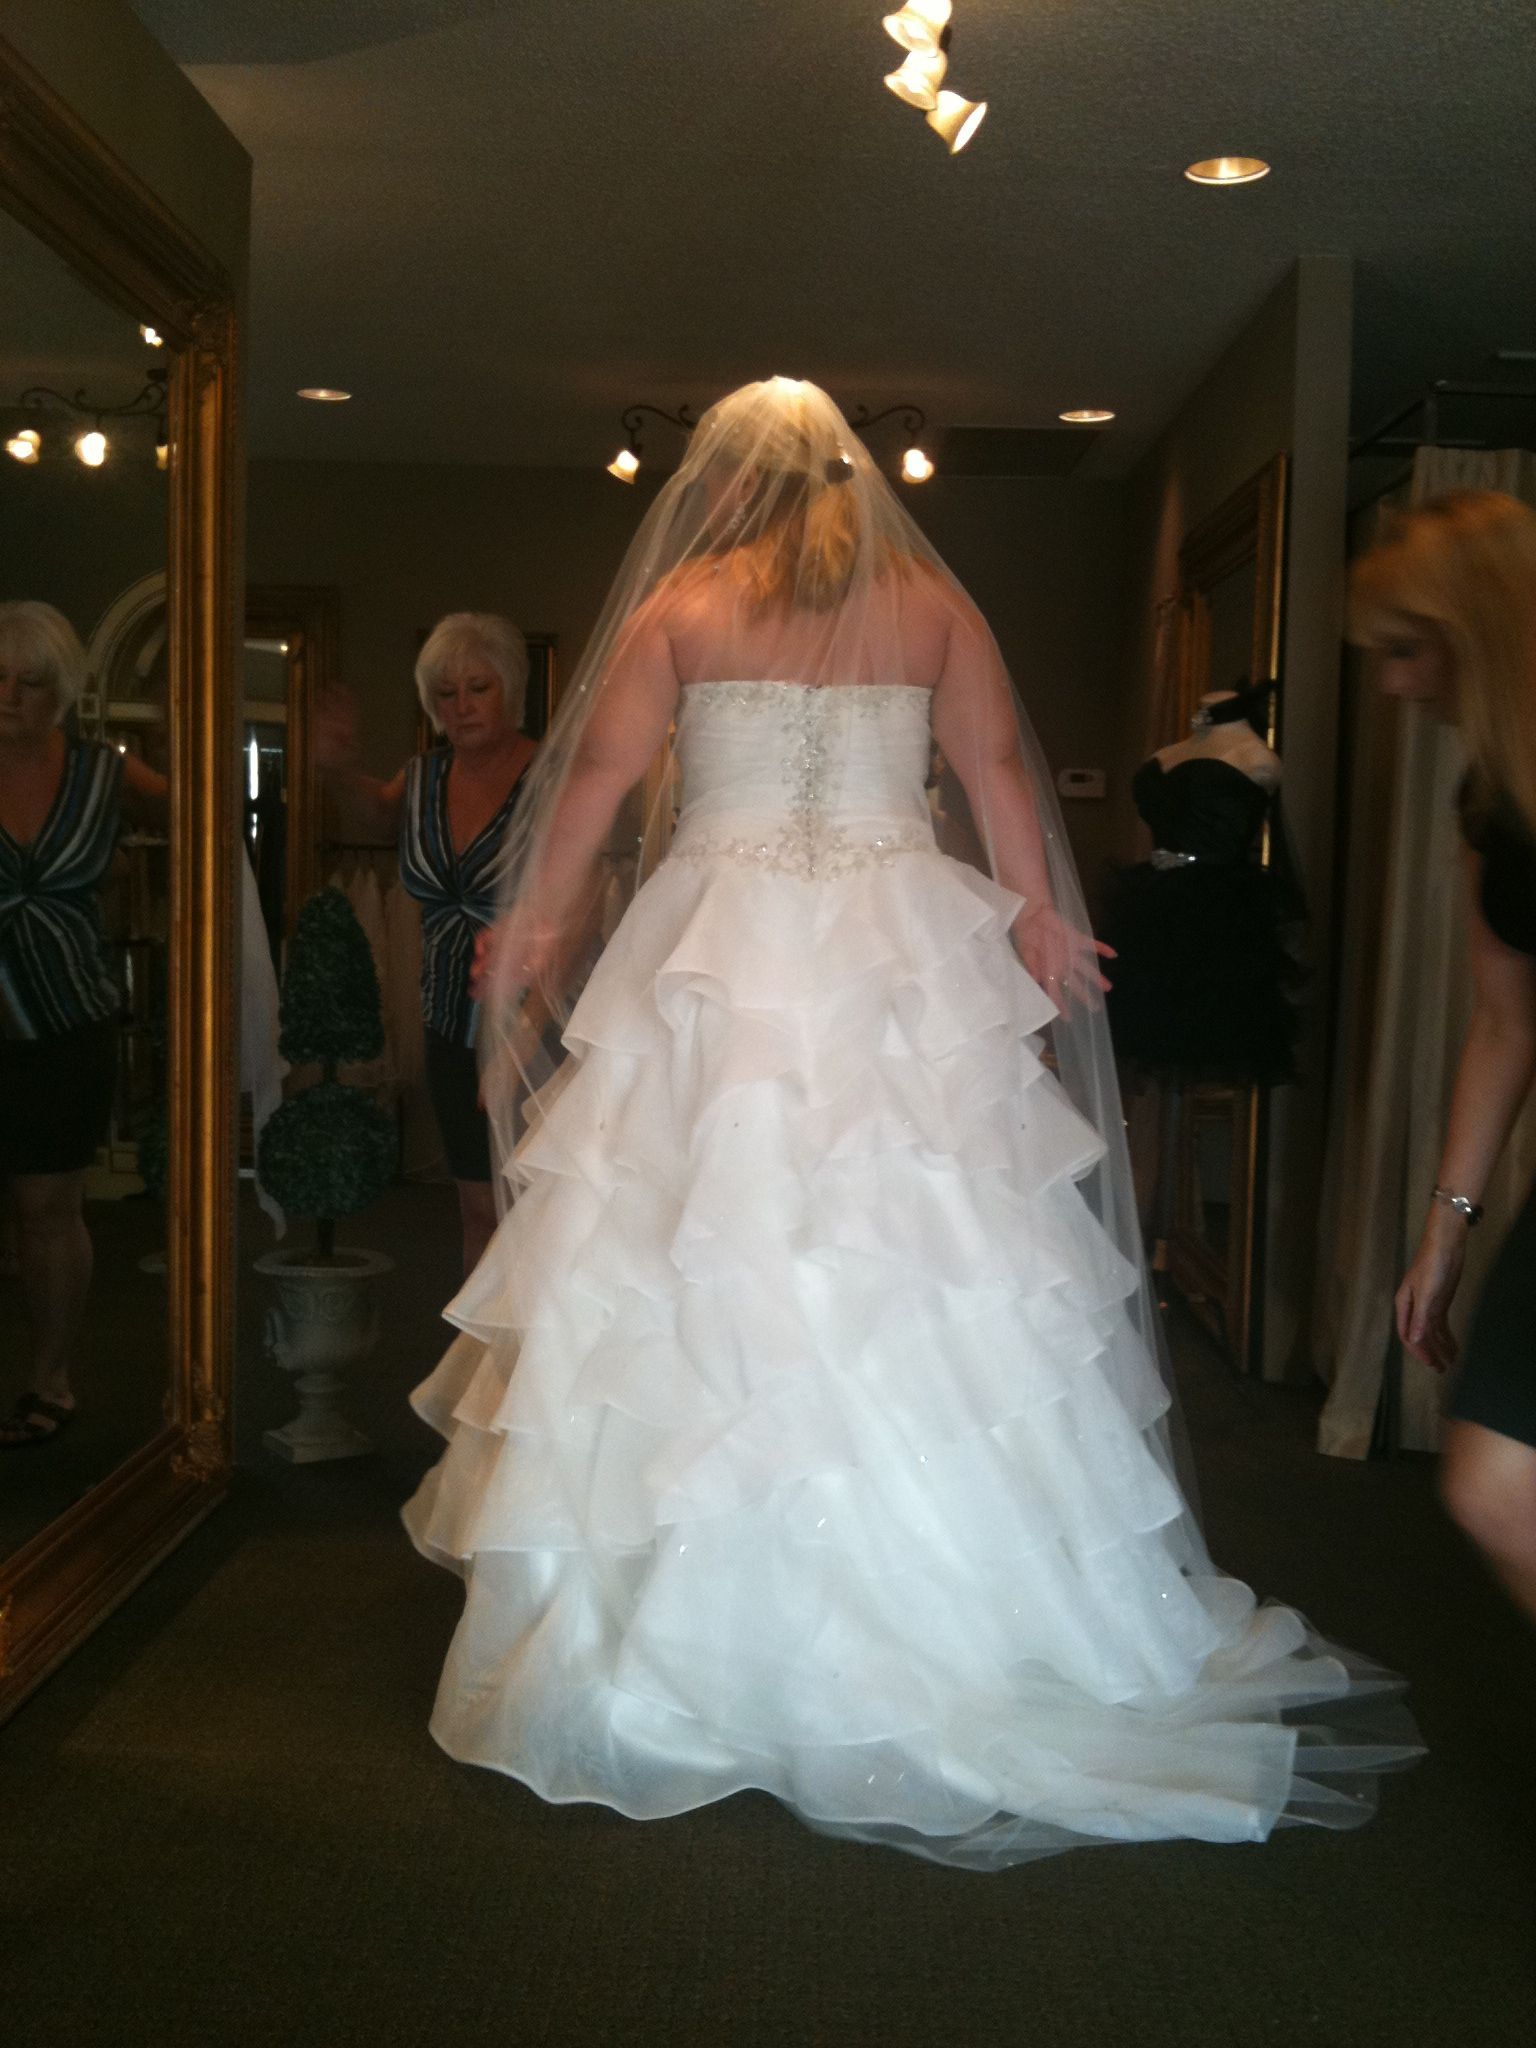 My wedding veil. It was a little longer than my dress and had bling scattered throughout. LOVED IT!!